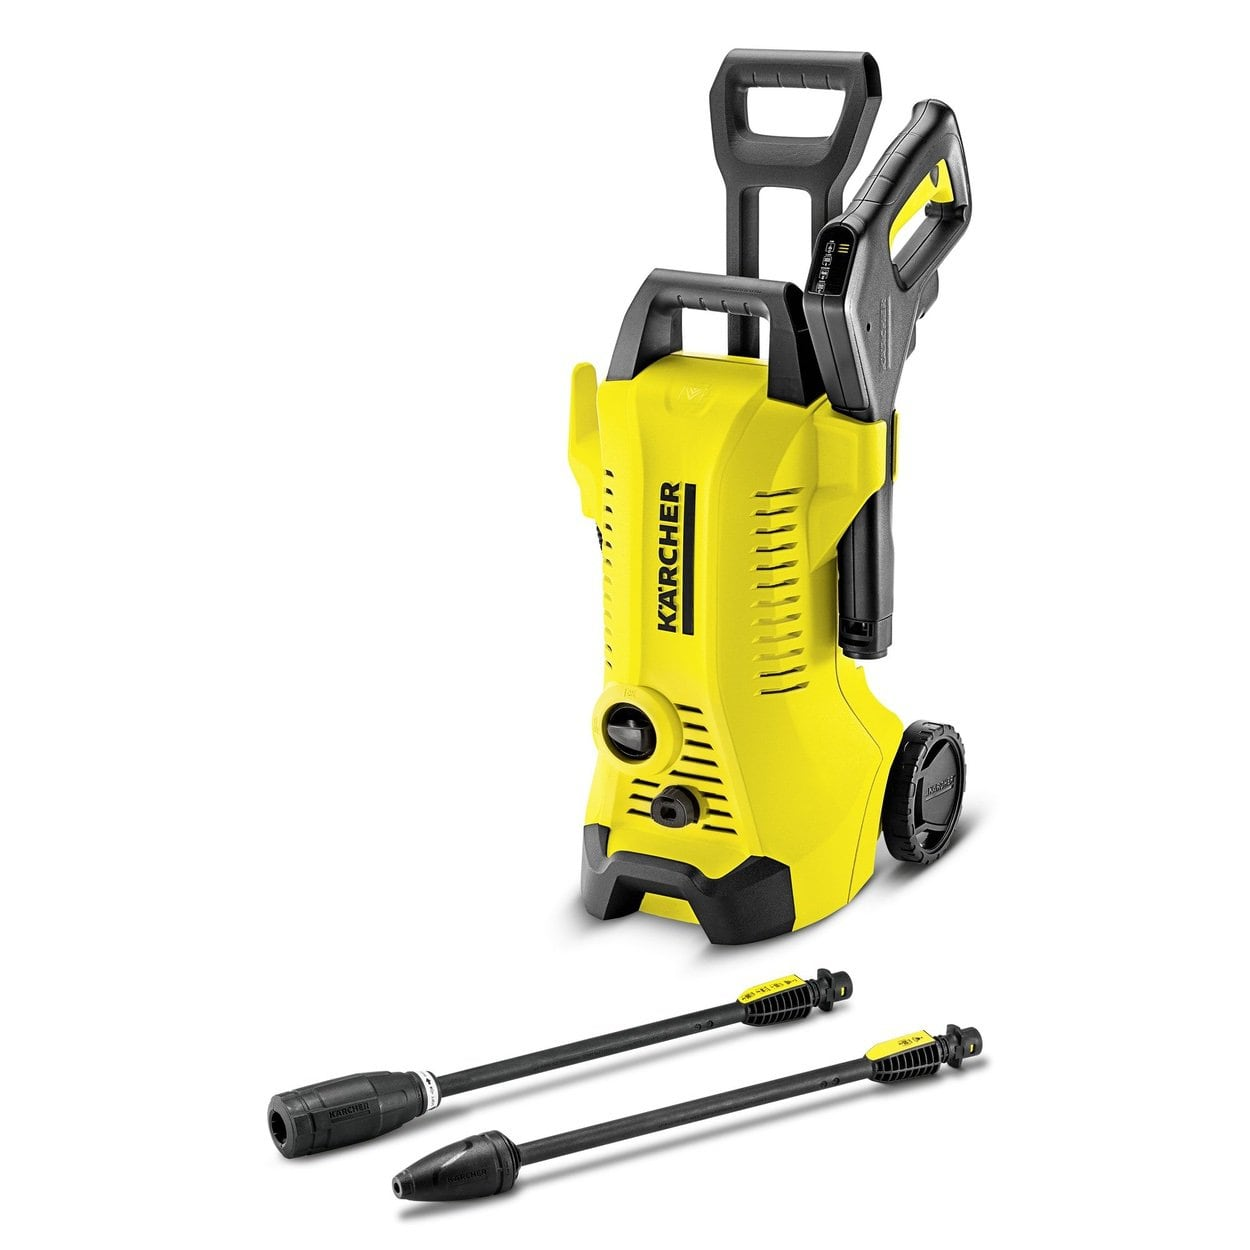 Karcher K3 Full Control Pressure Washer